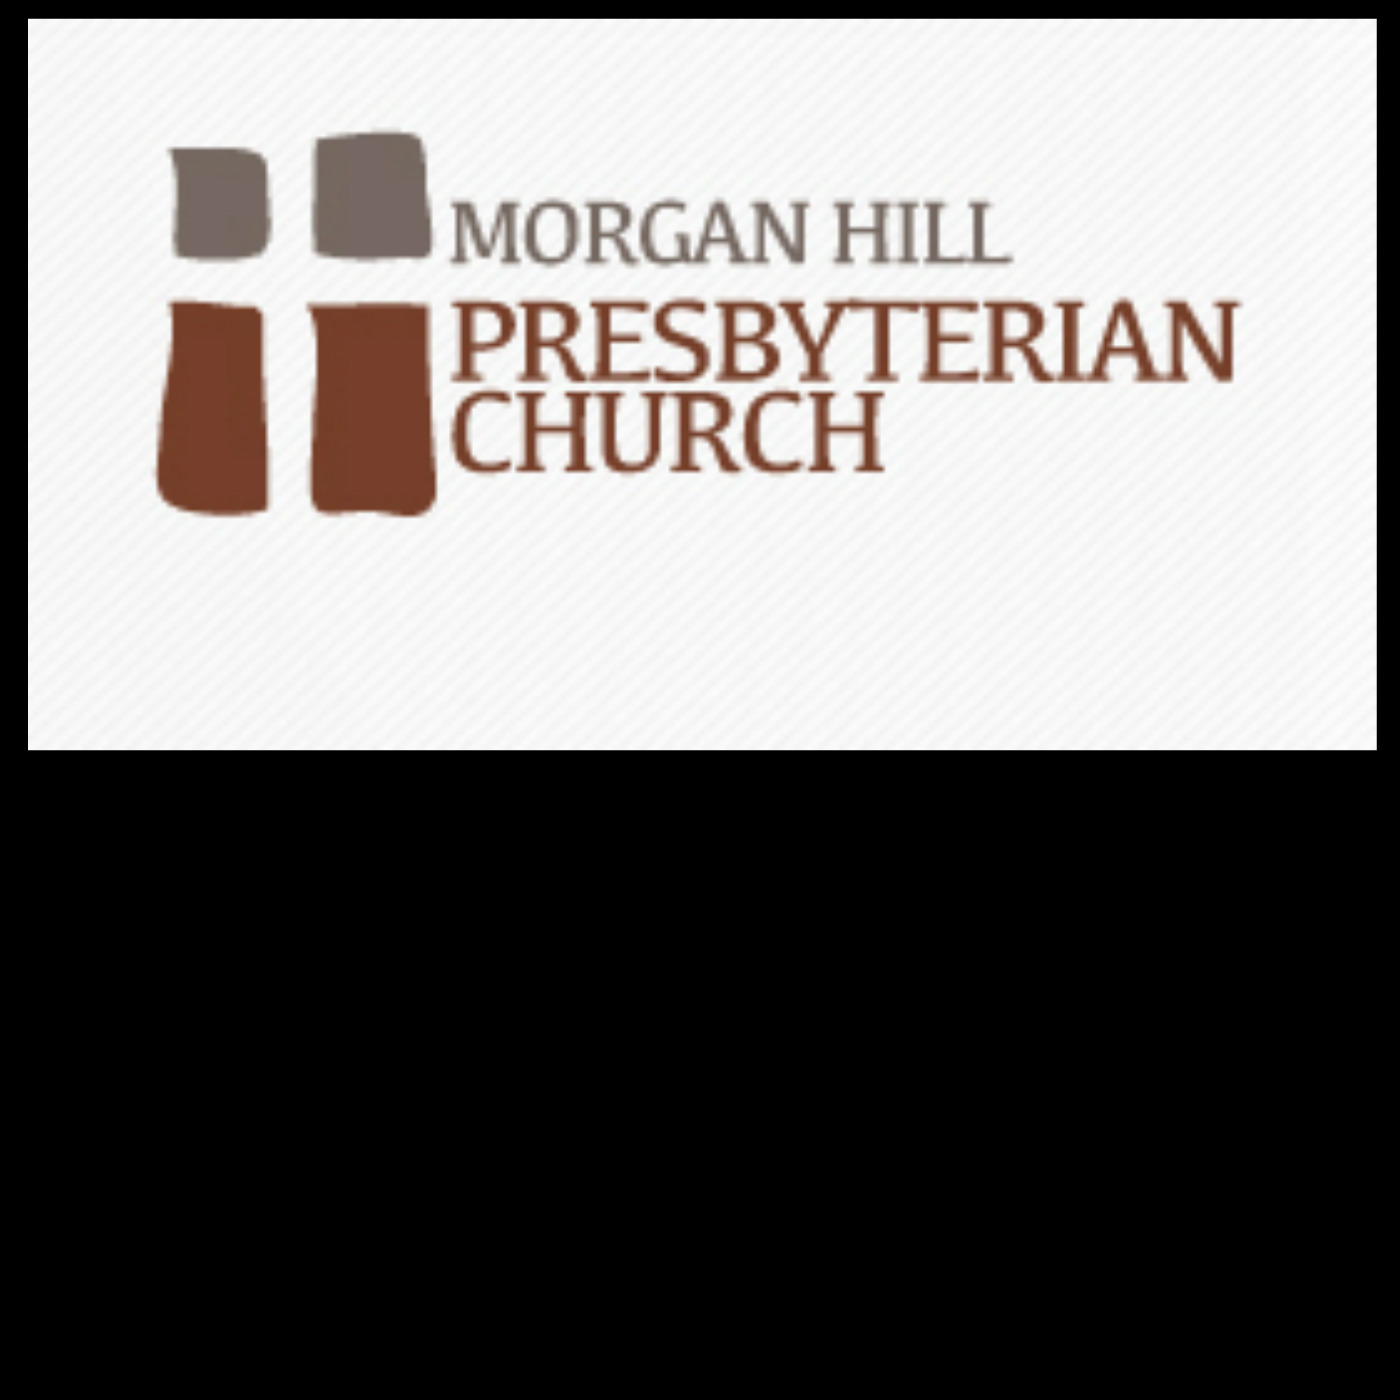 Morgan Hill Presbyterian Church Sermons